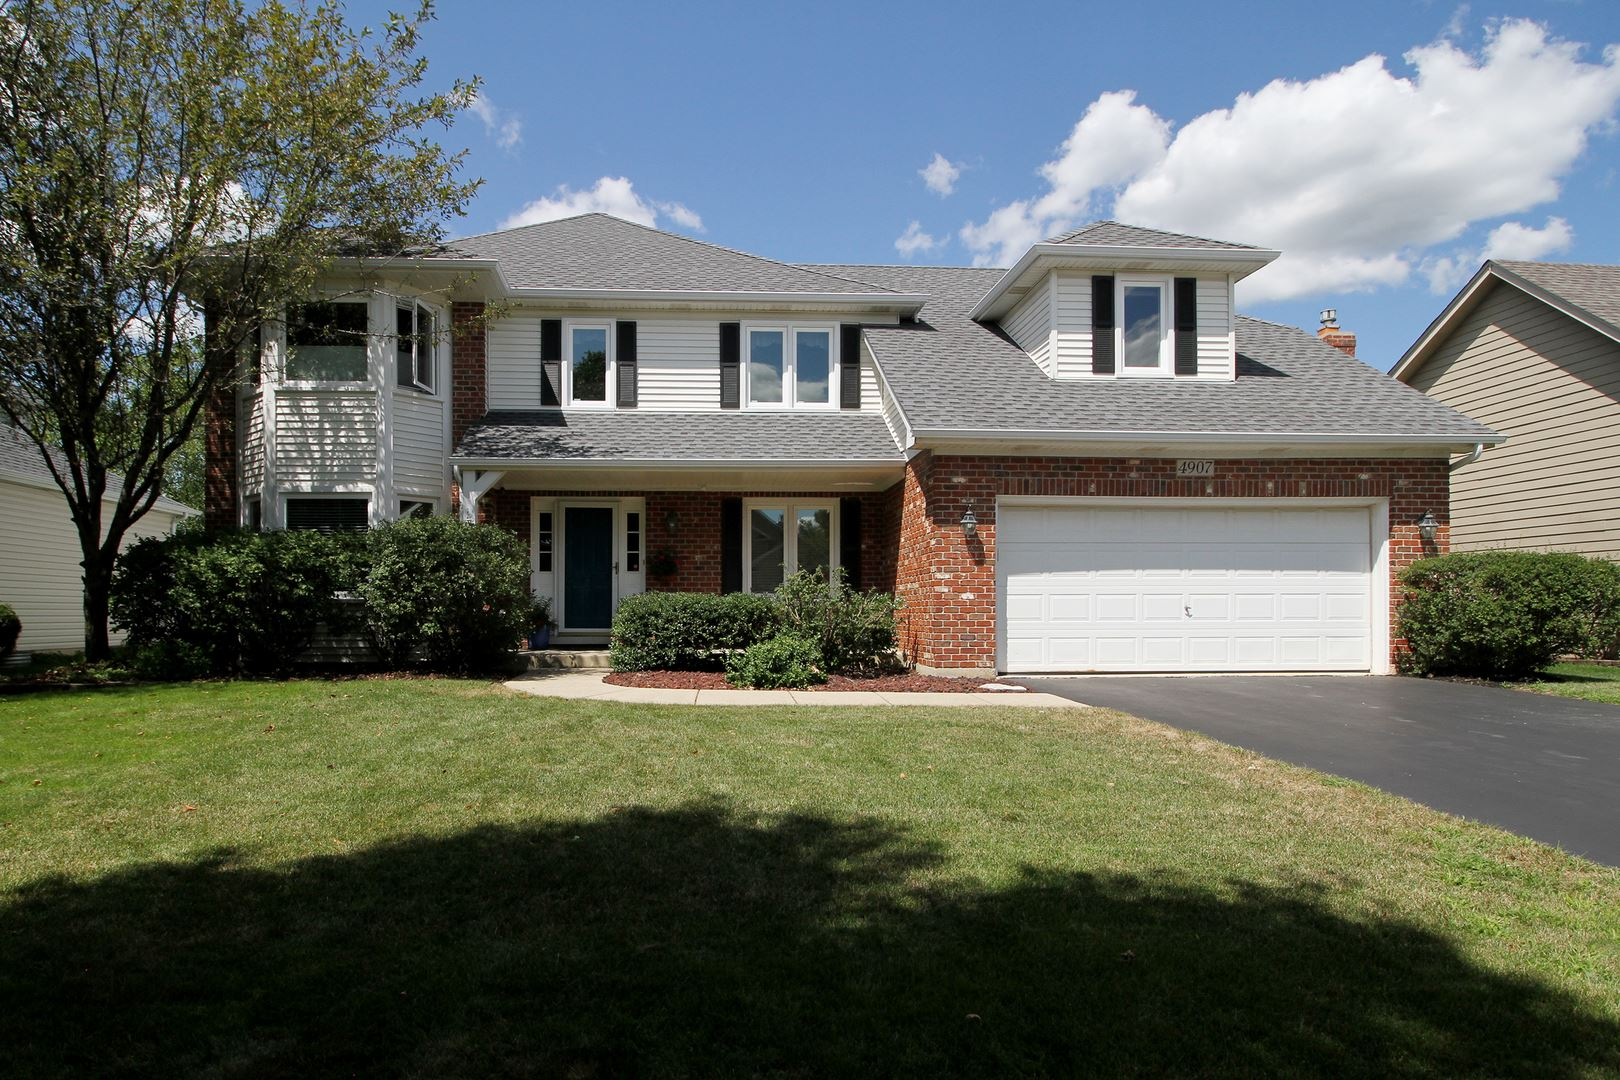 4907 clearwater Lane, Naperville, IL 60564 - #: 10808236